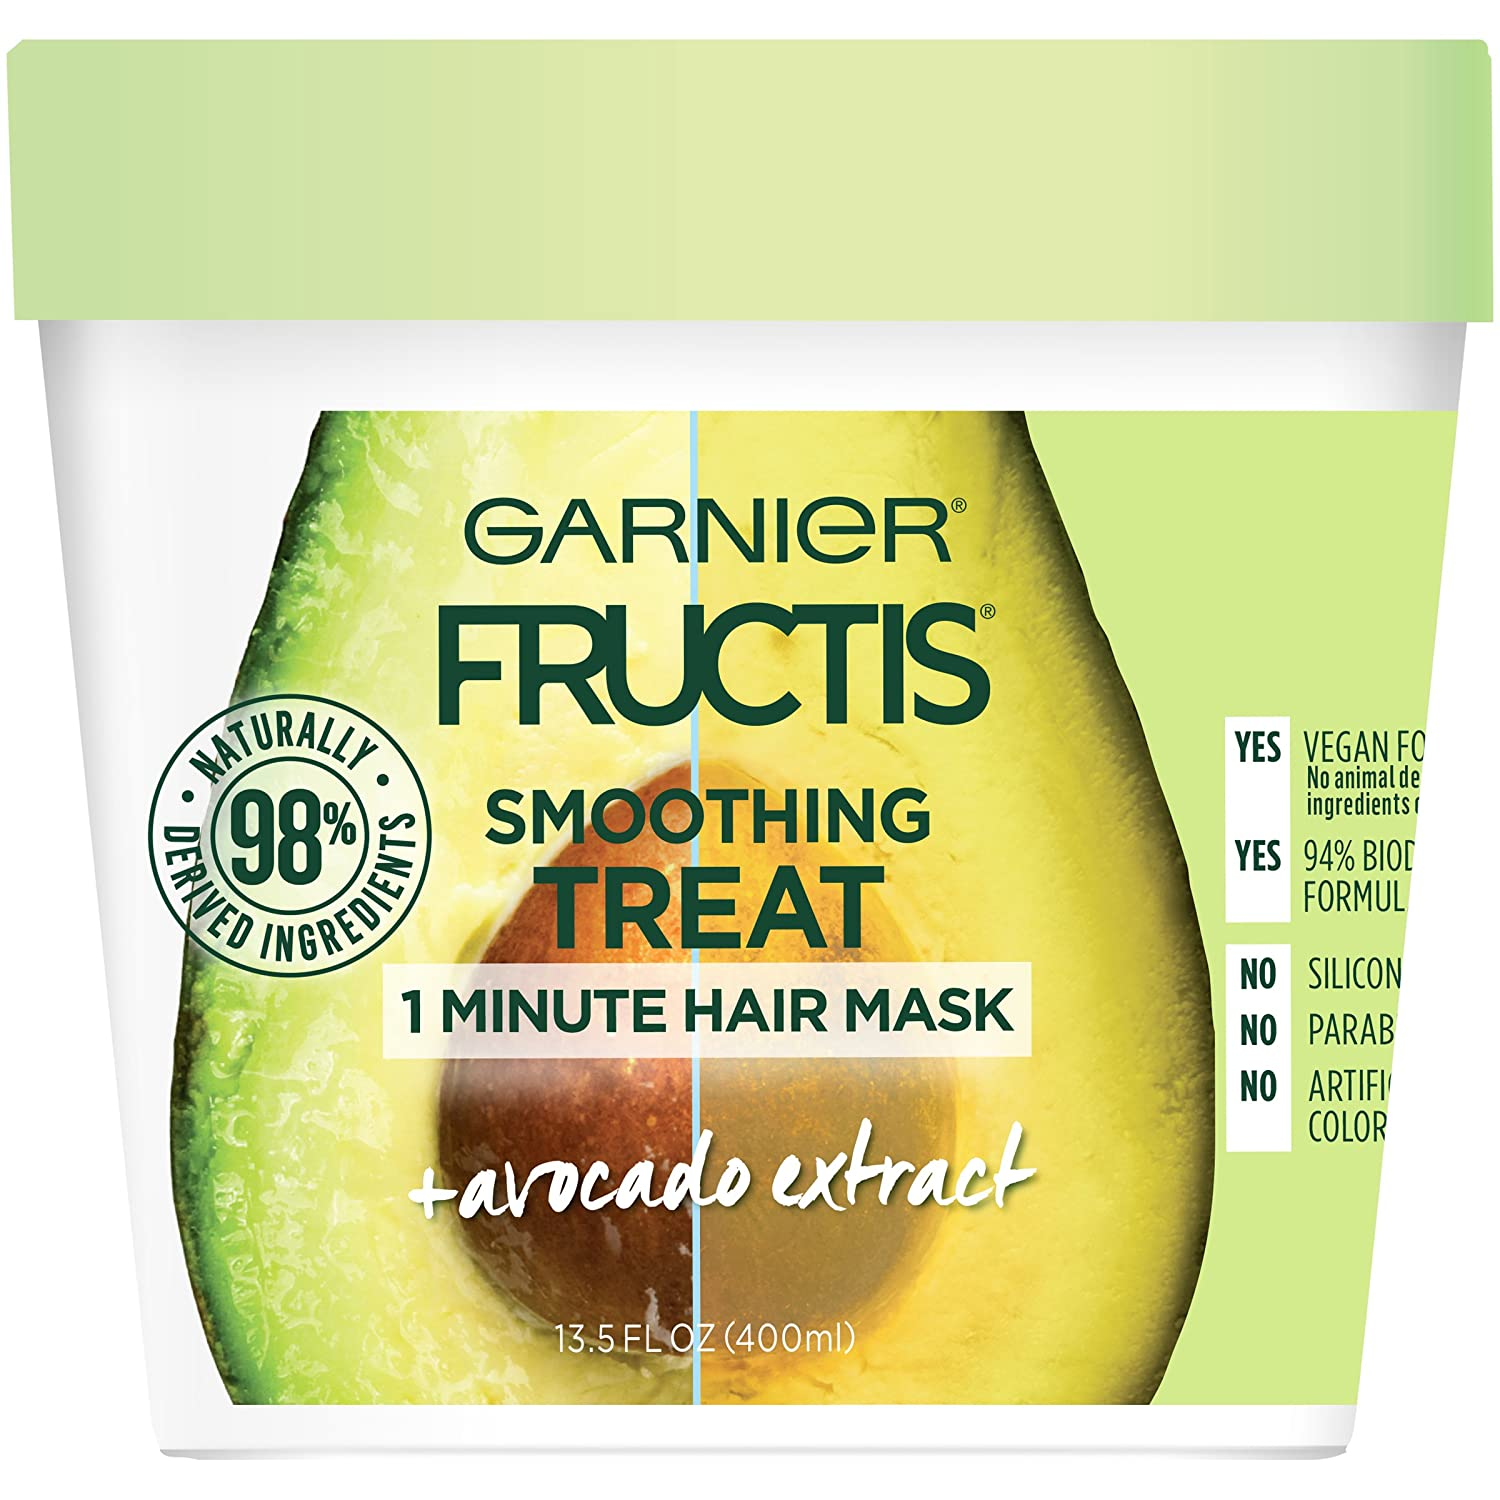 Garnier Fructis Smoothing Treat 1 Minute Hair Mask with Avocado Extractfor Split Ends and to Add Shine, 13.5 Ounce